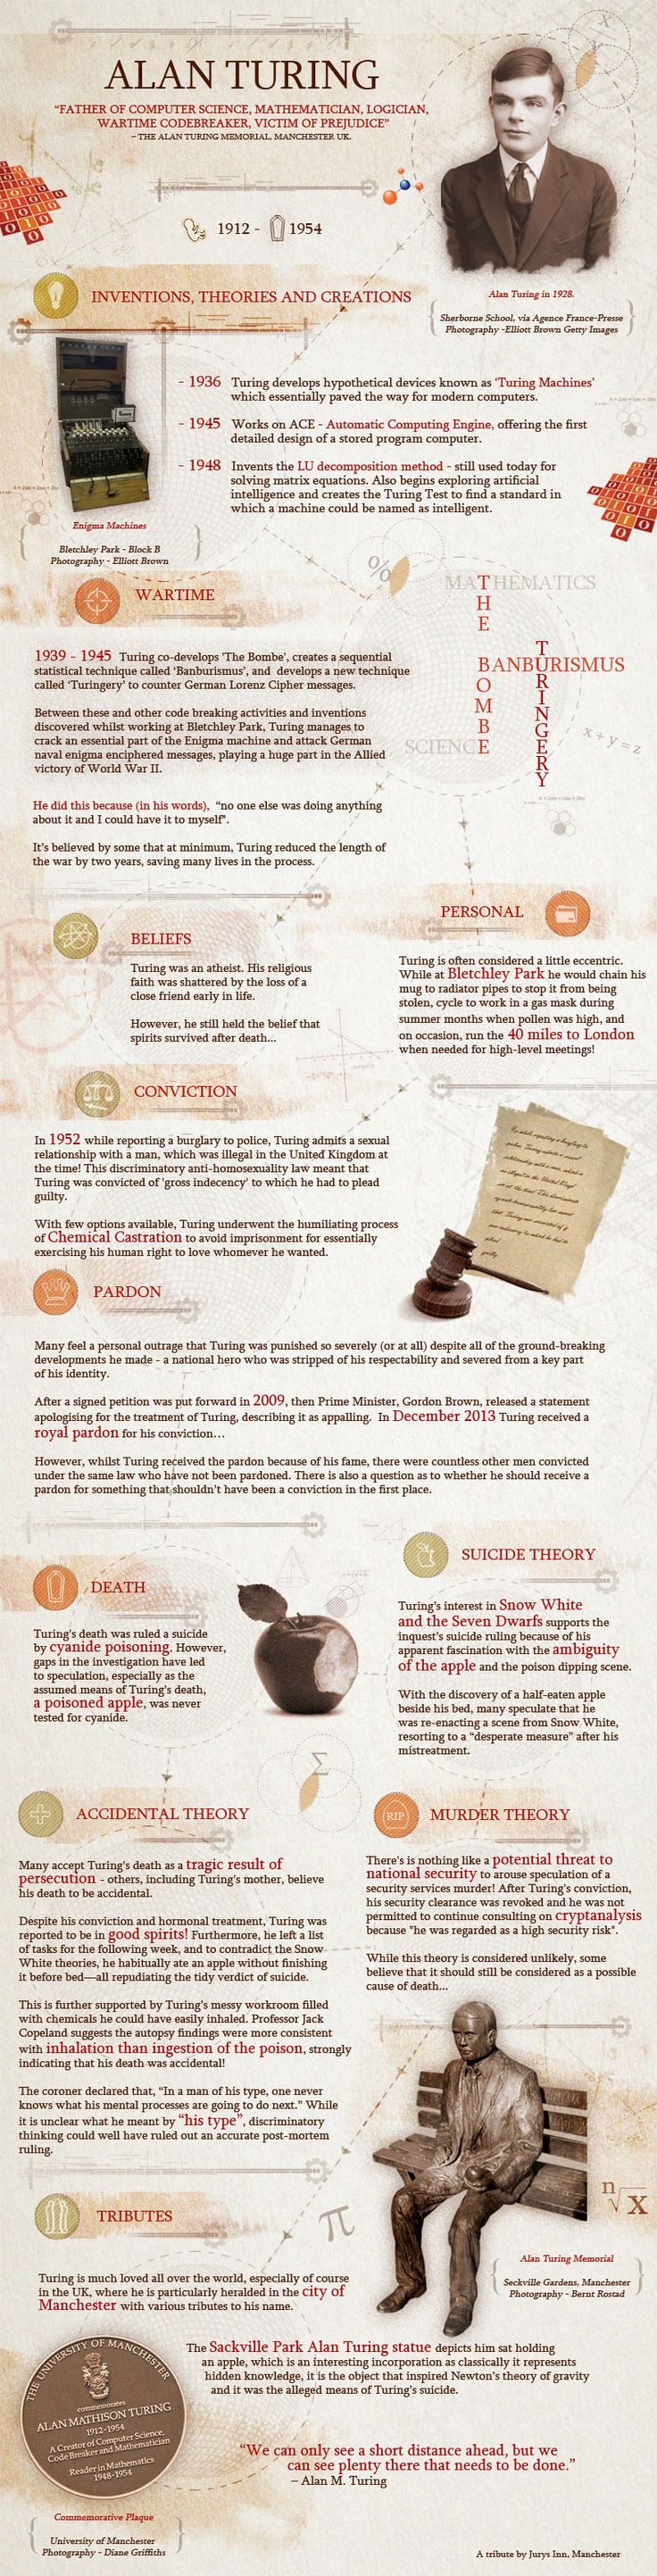 Alan Turing Infographic by Jurys Inn Hotels